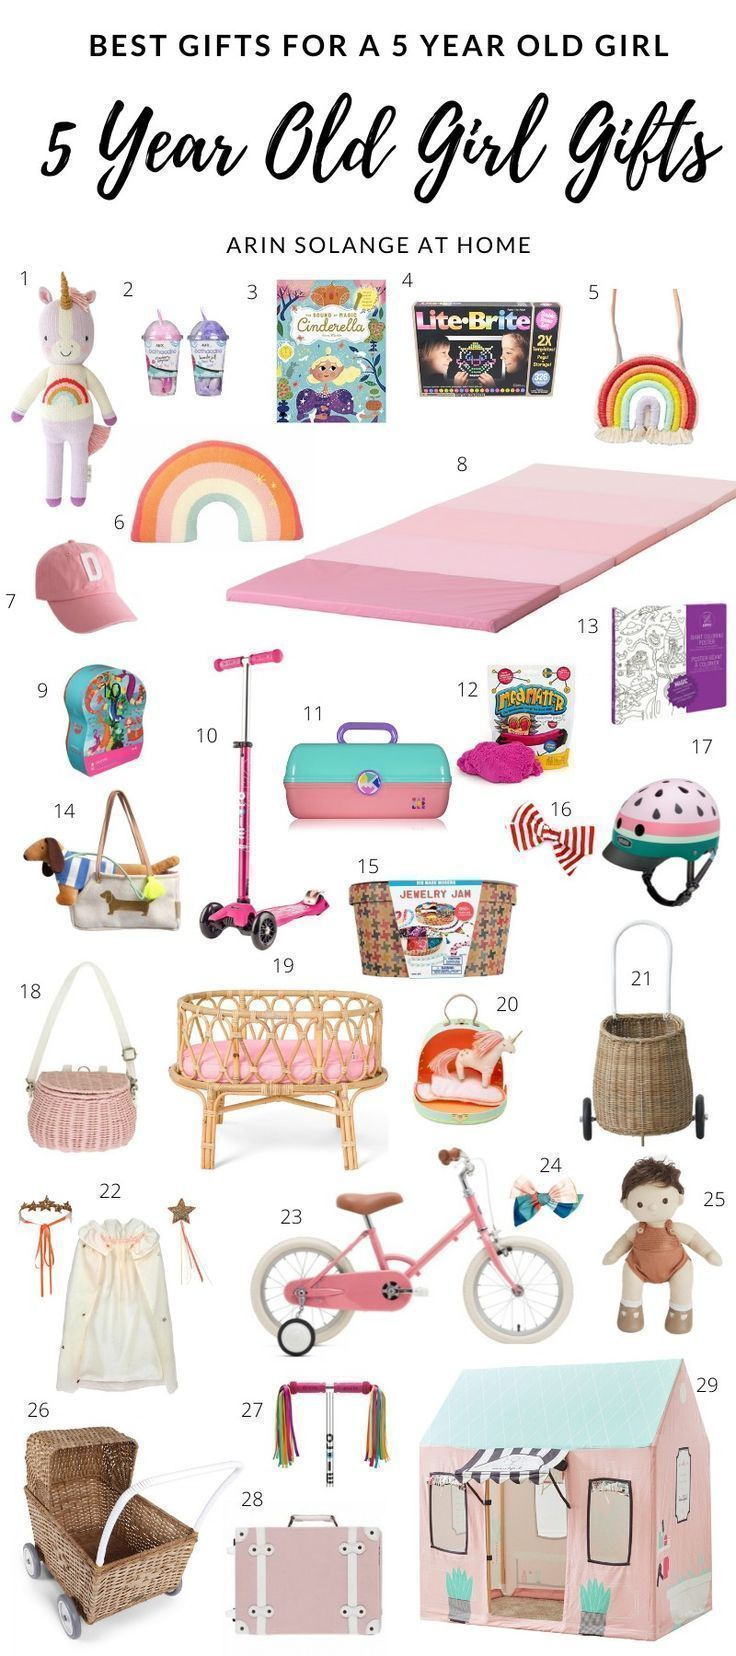 Best gifts for a 5 year old girl arinsolangeathome in